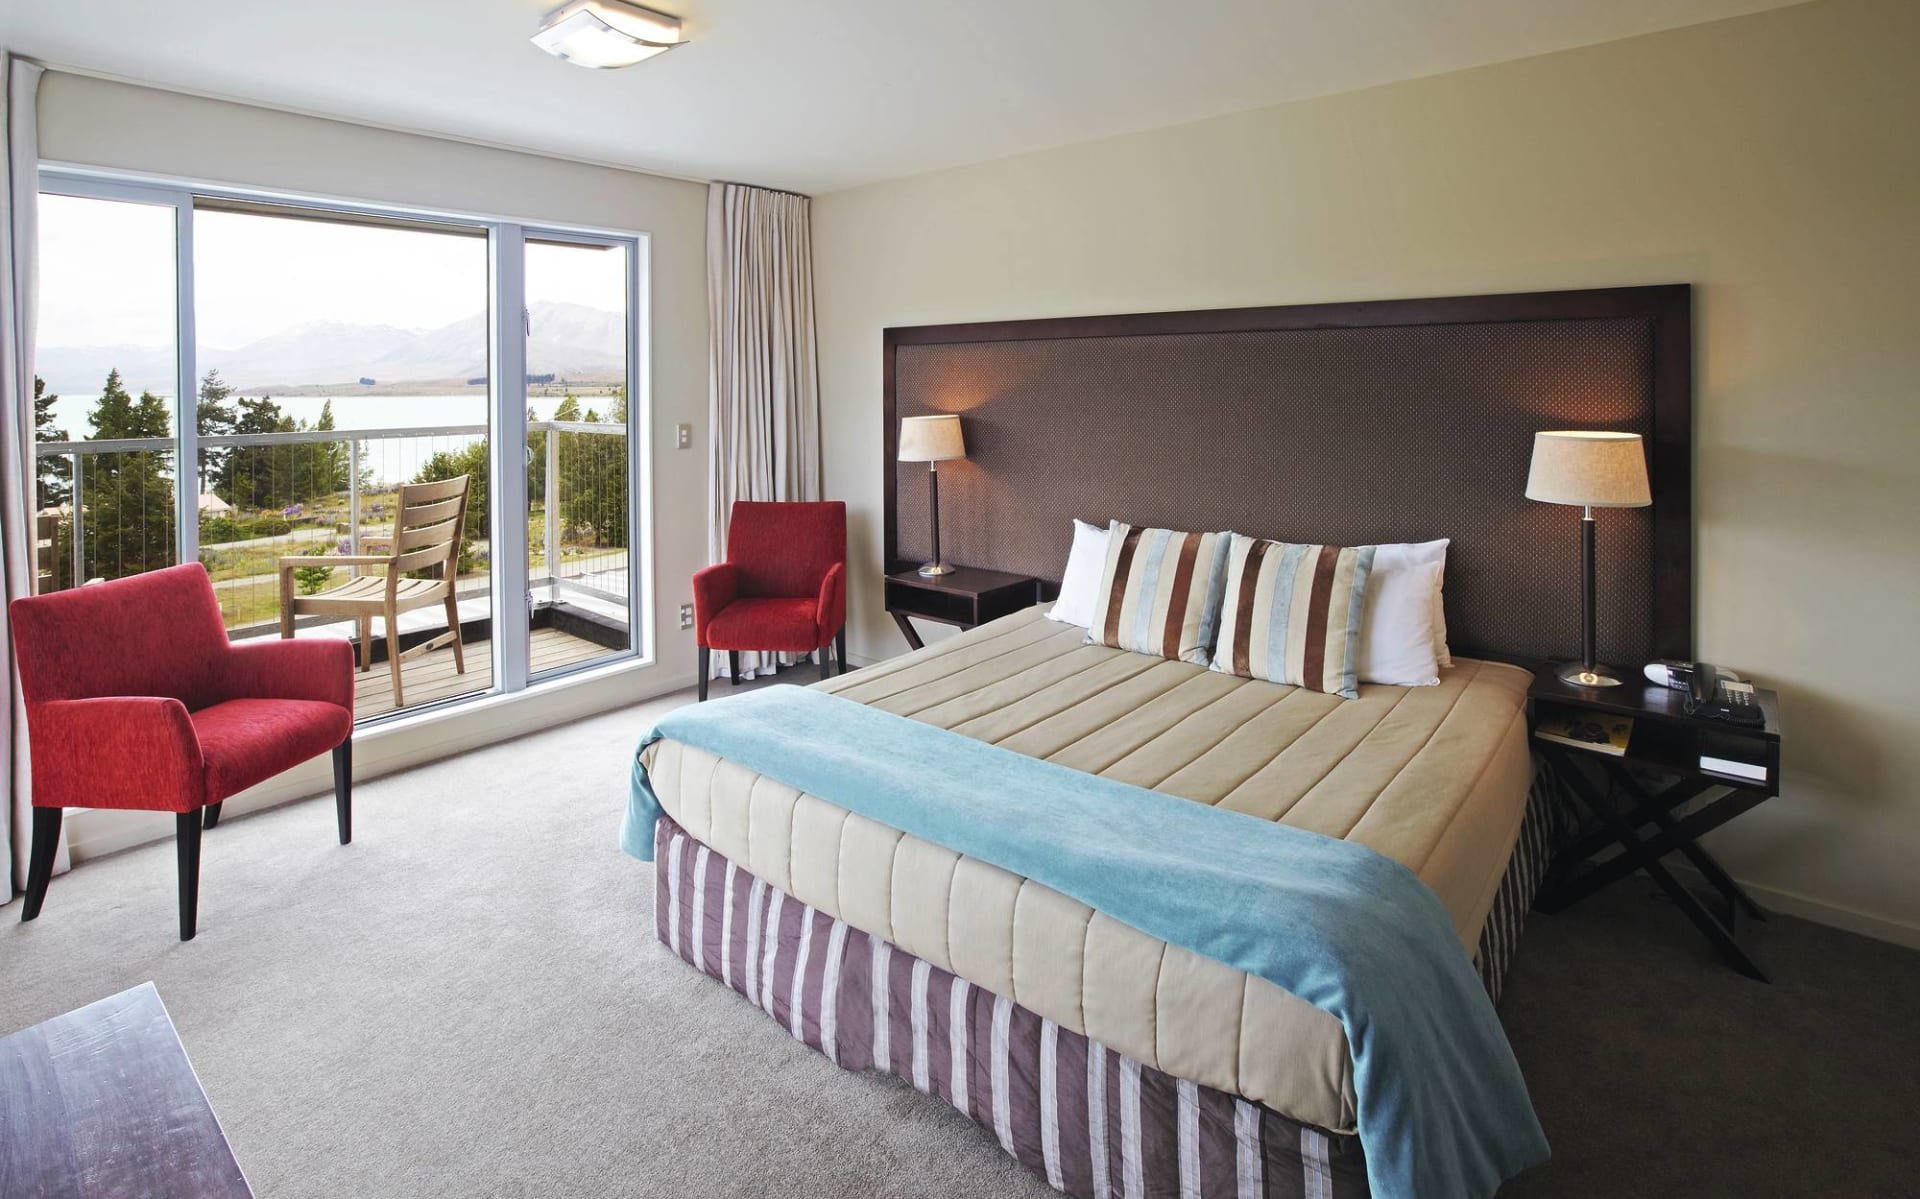 Peppers Bluewater Lake Resort in Tekapo: Peppers Bluewater Lake Resort Tekapo Südinsel Neuseeland  Deluxe Lakeview  2017